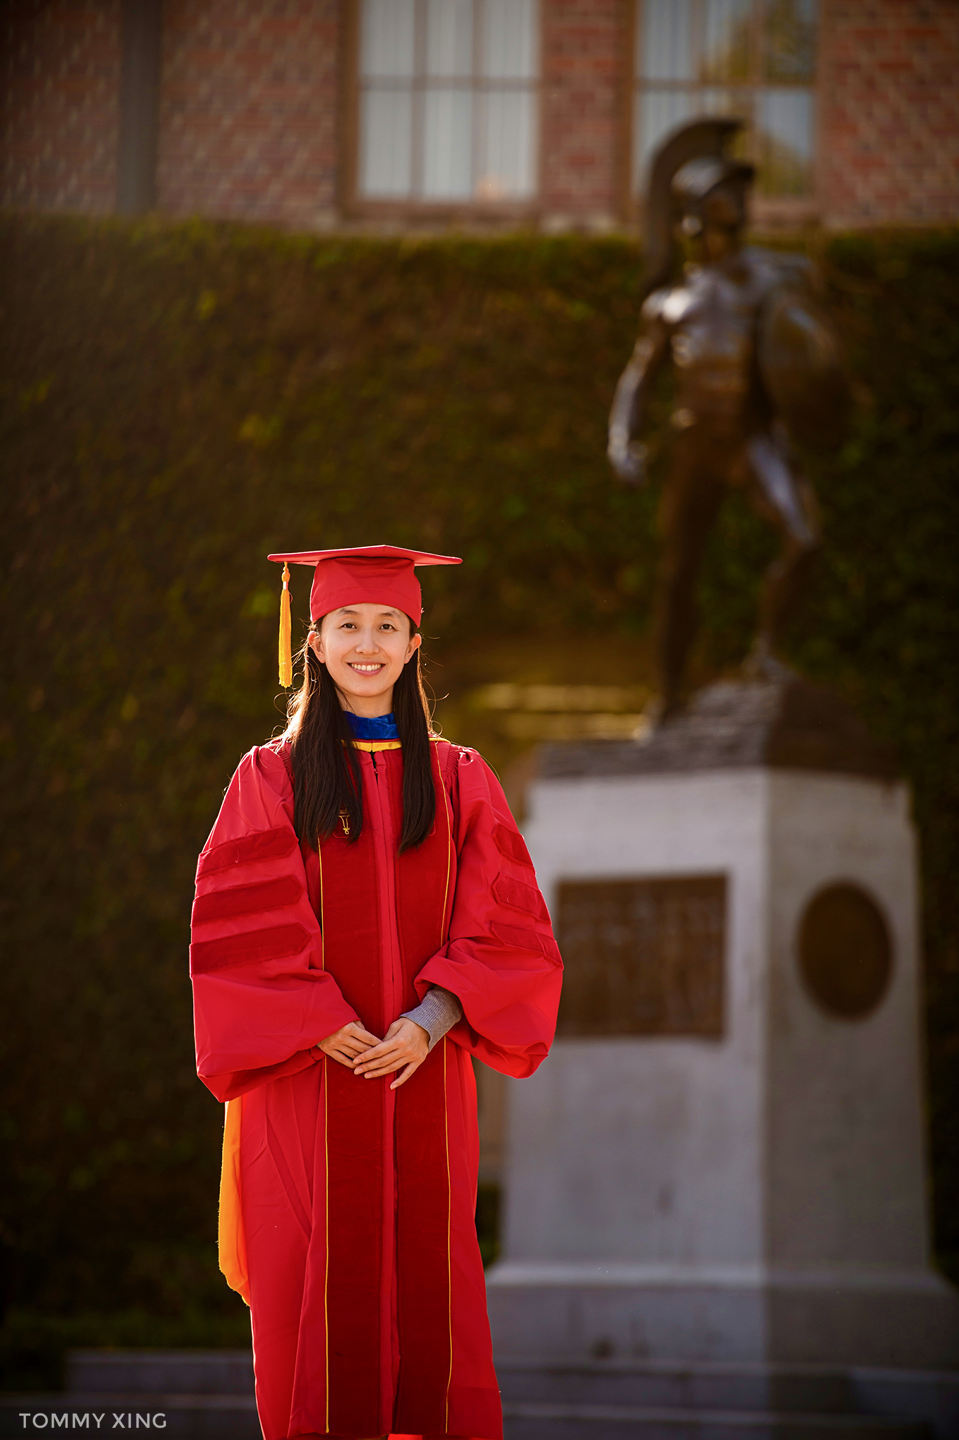 Graduation portrait photography - USC - Los Angeles - Tommy Xing Photography 04.jpg